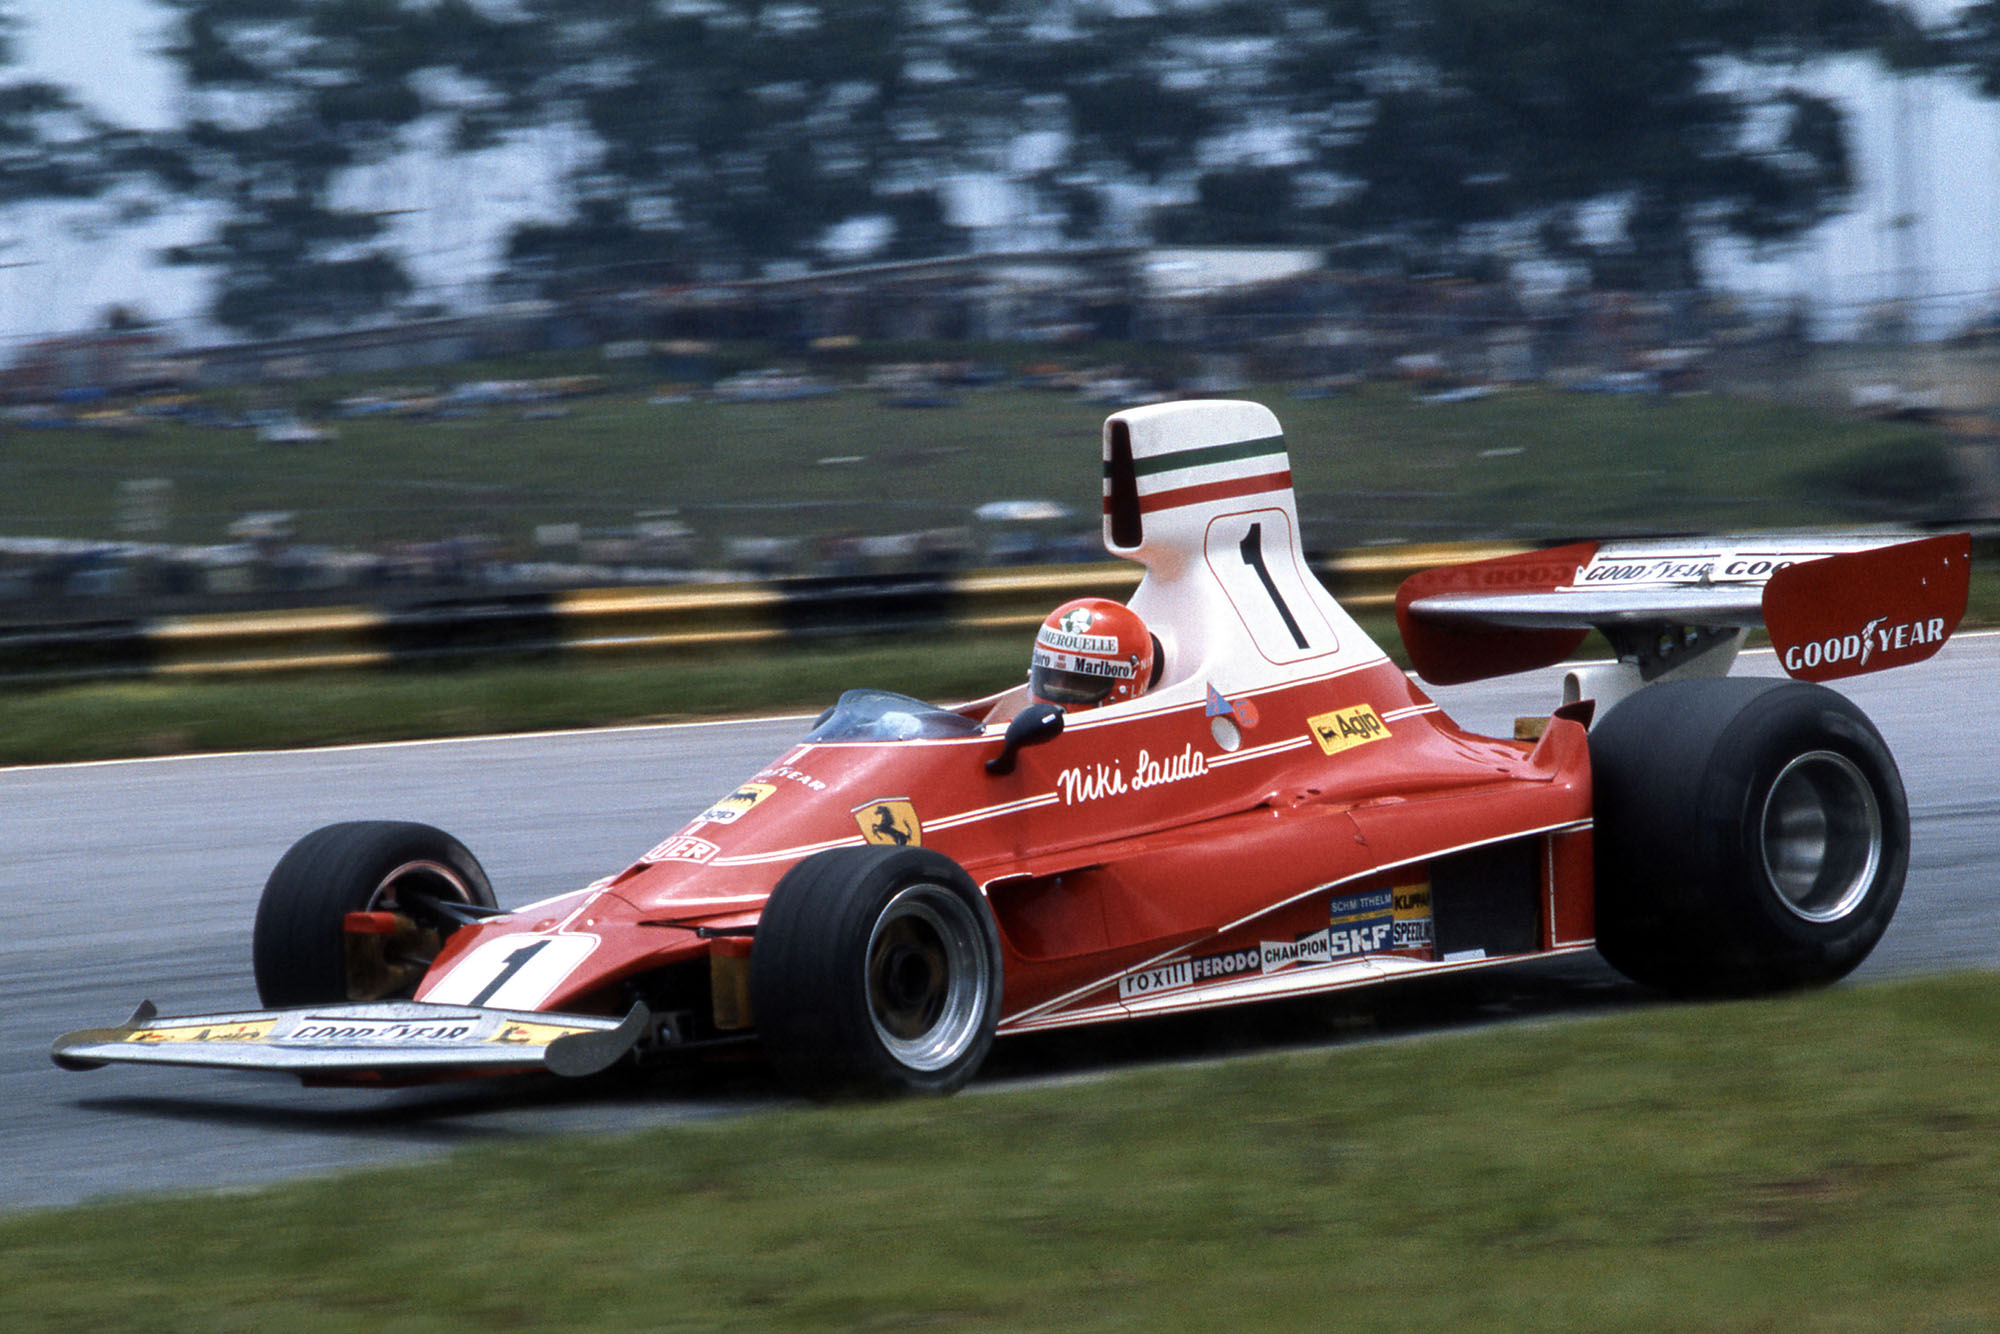 Niki Lauda (Ferrari) driving at the 1976 Brazilian Grand Prix